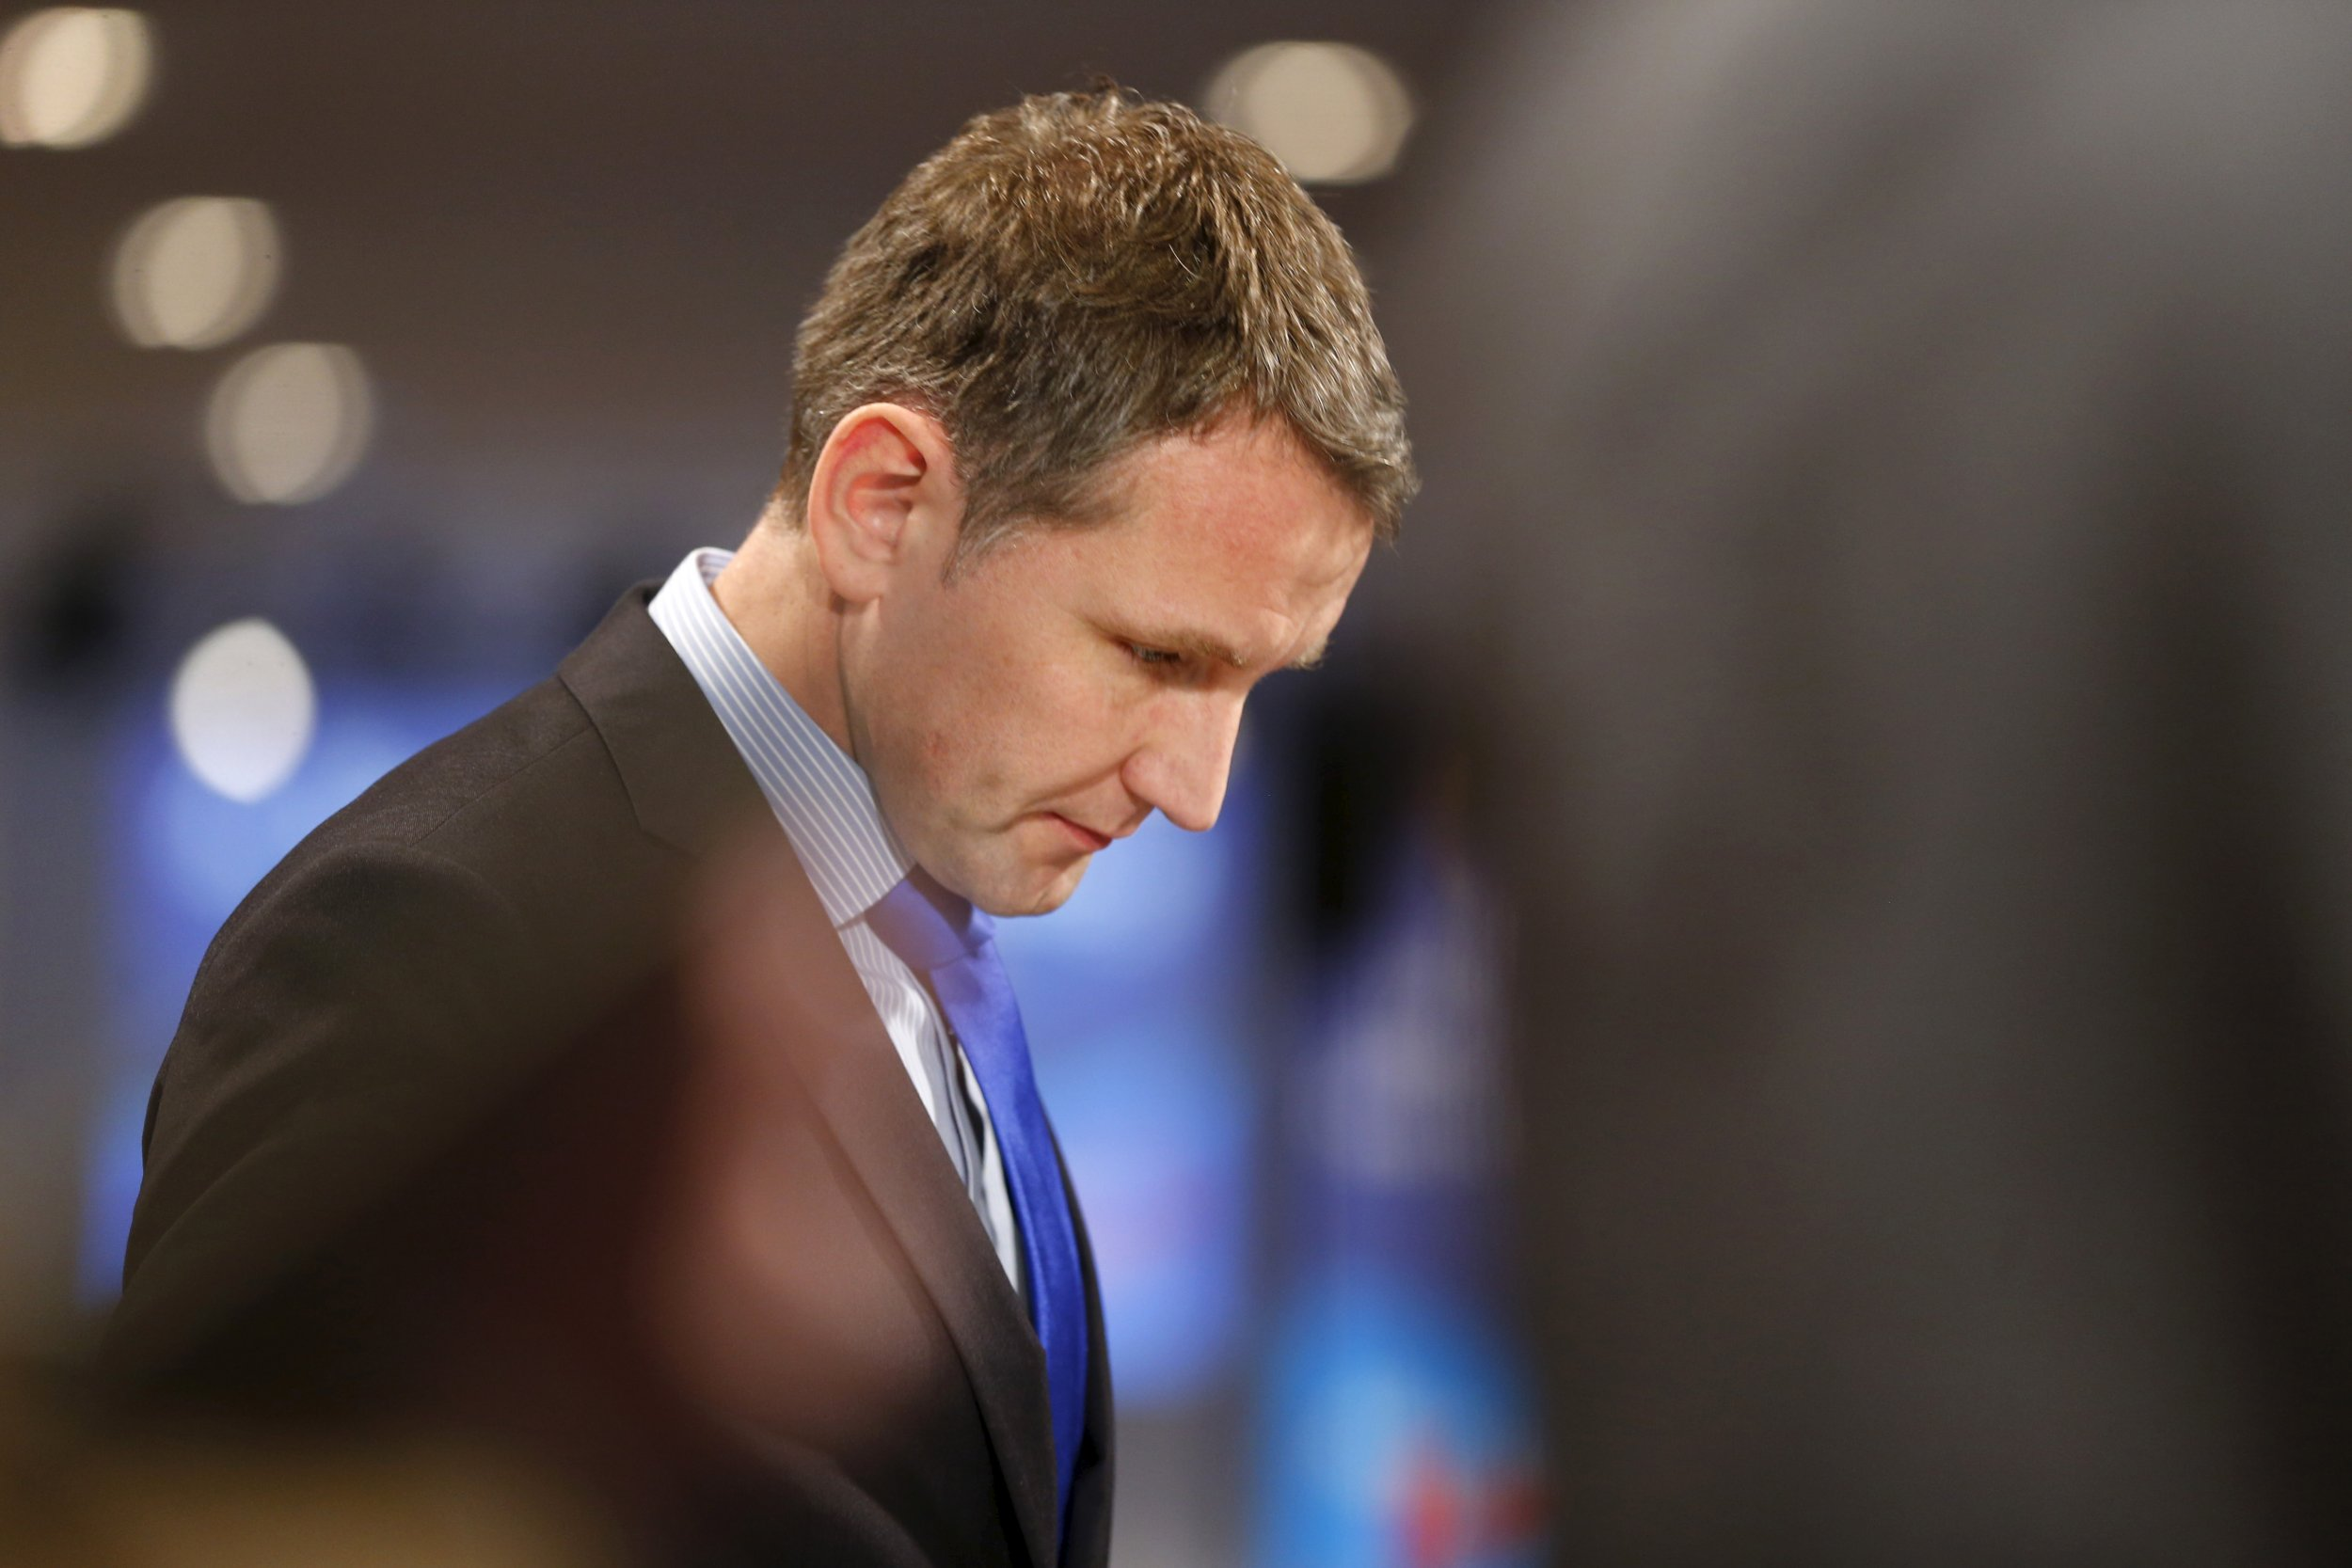 Bjoern Hoecke, spokesperson of the right-wing Alternative for Germany (AfD) party